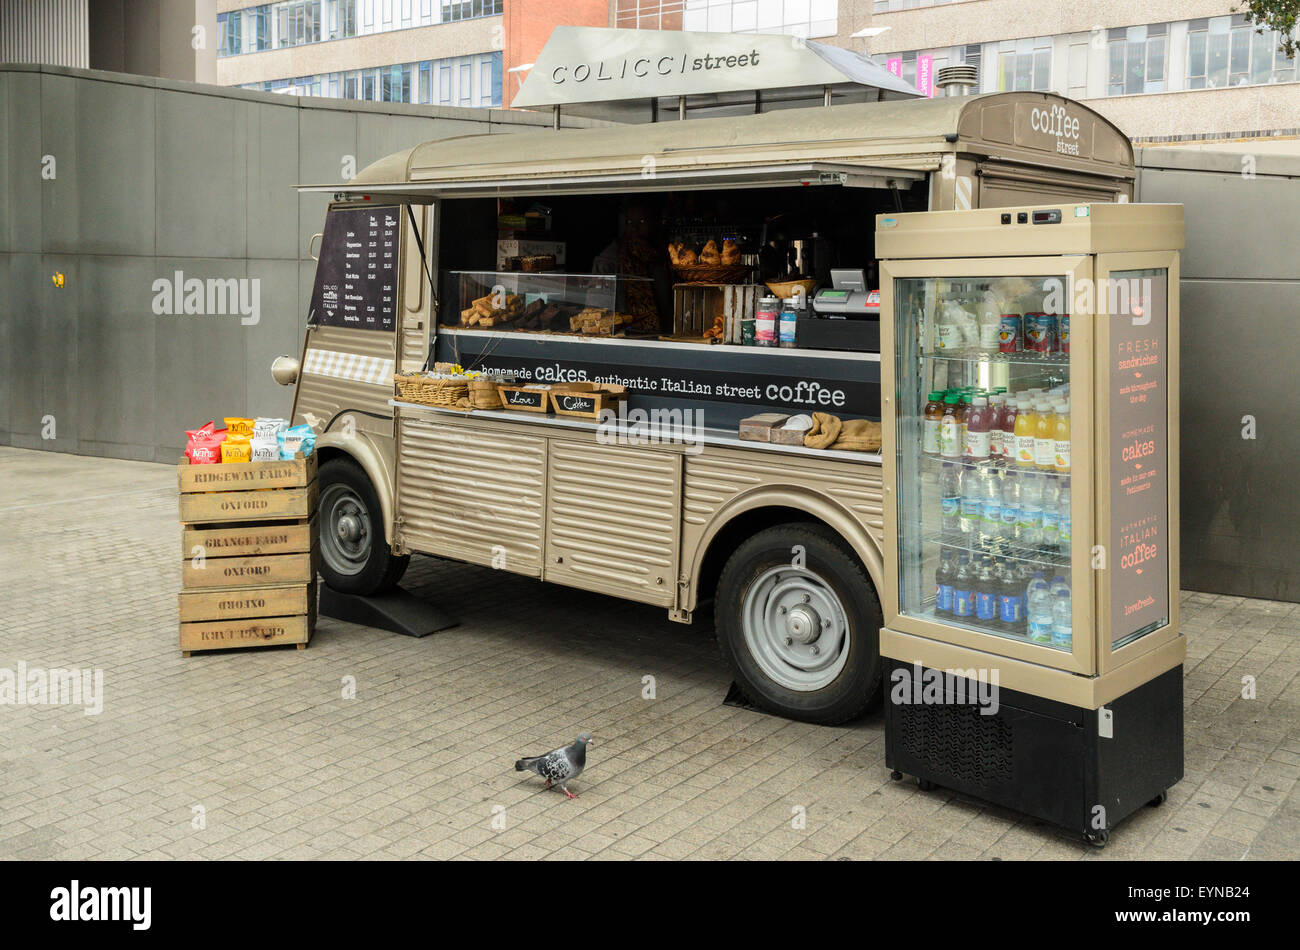 Coffee Stall at Paddington Station, London, England, UK - Stock Image